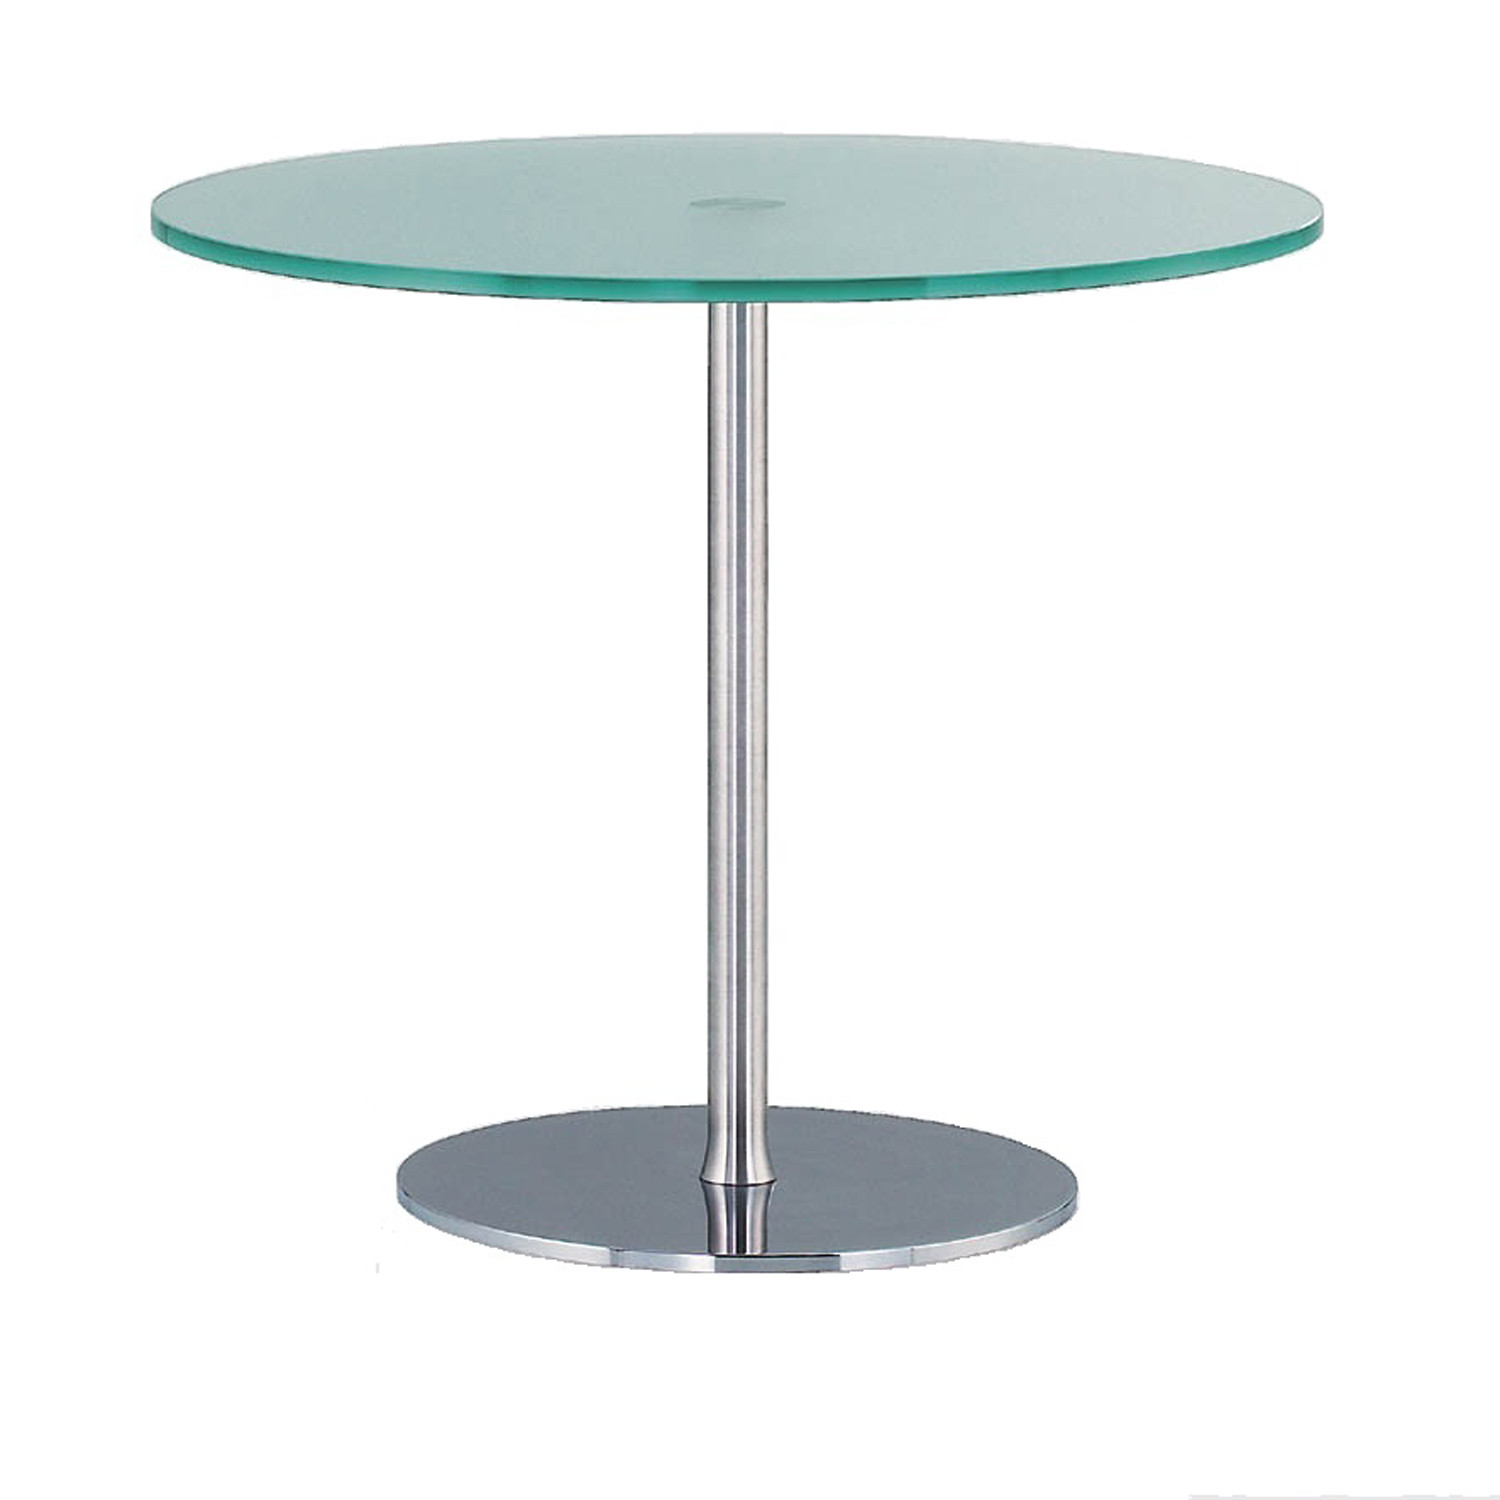 3060 Round Cafe Table in ESG Safety Glass